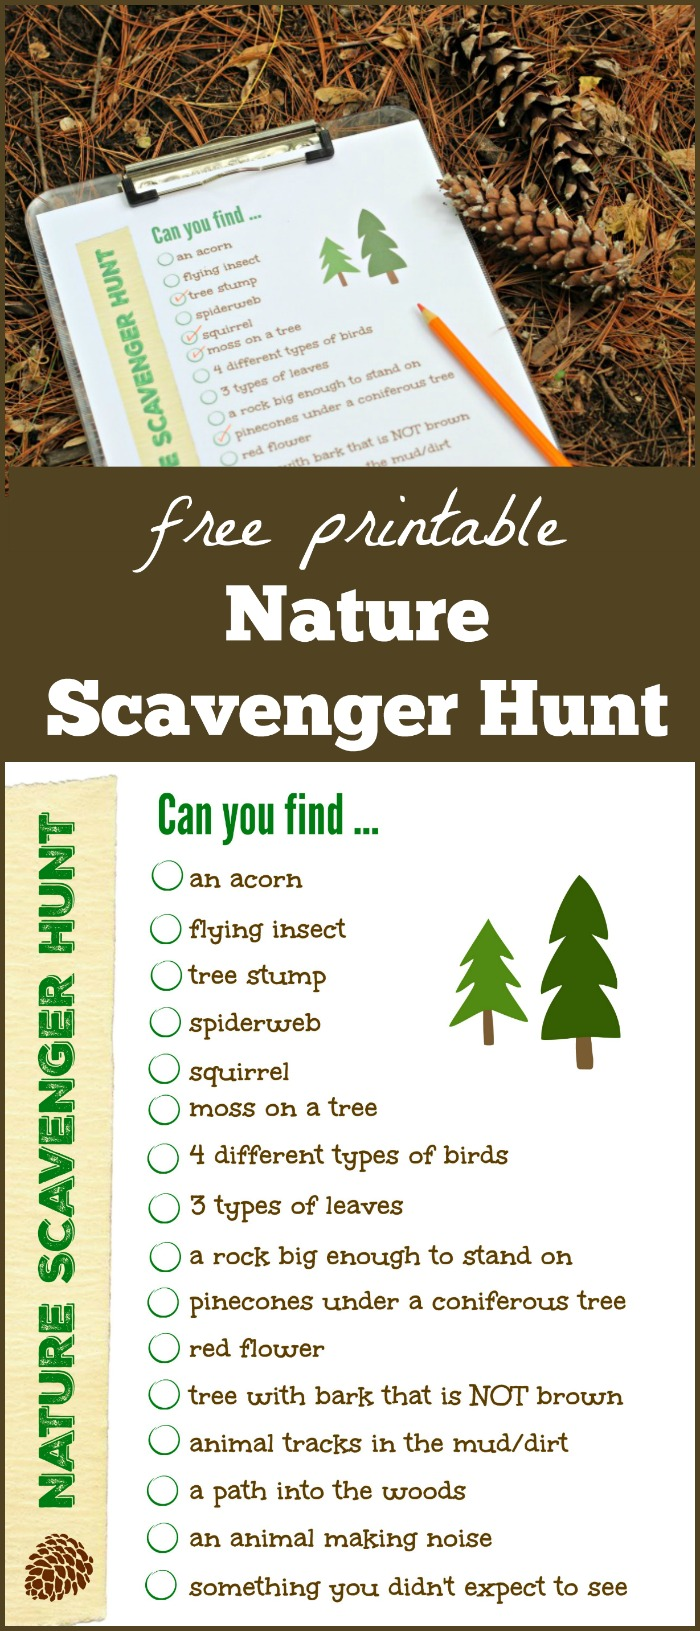 Dramatic image for free printable scavenger hunt